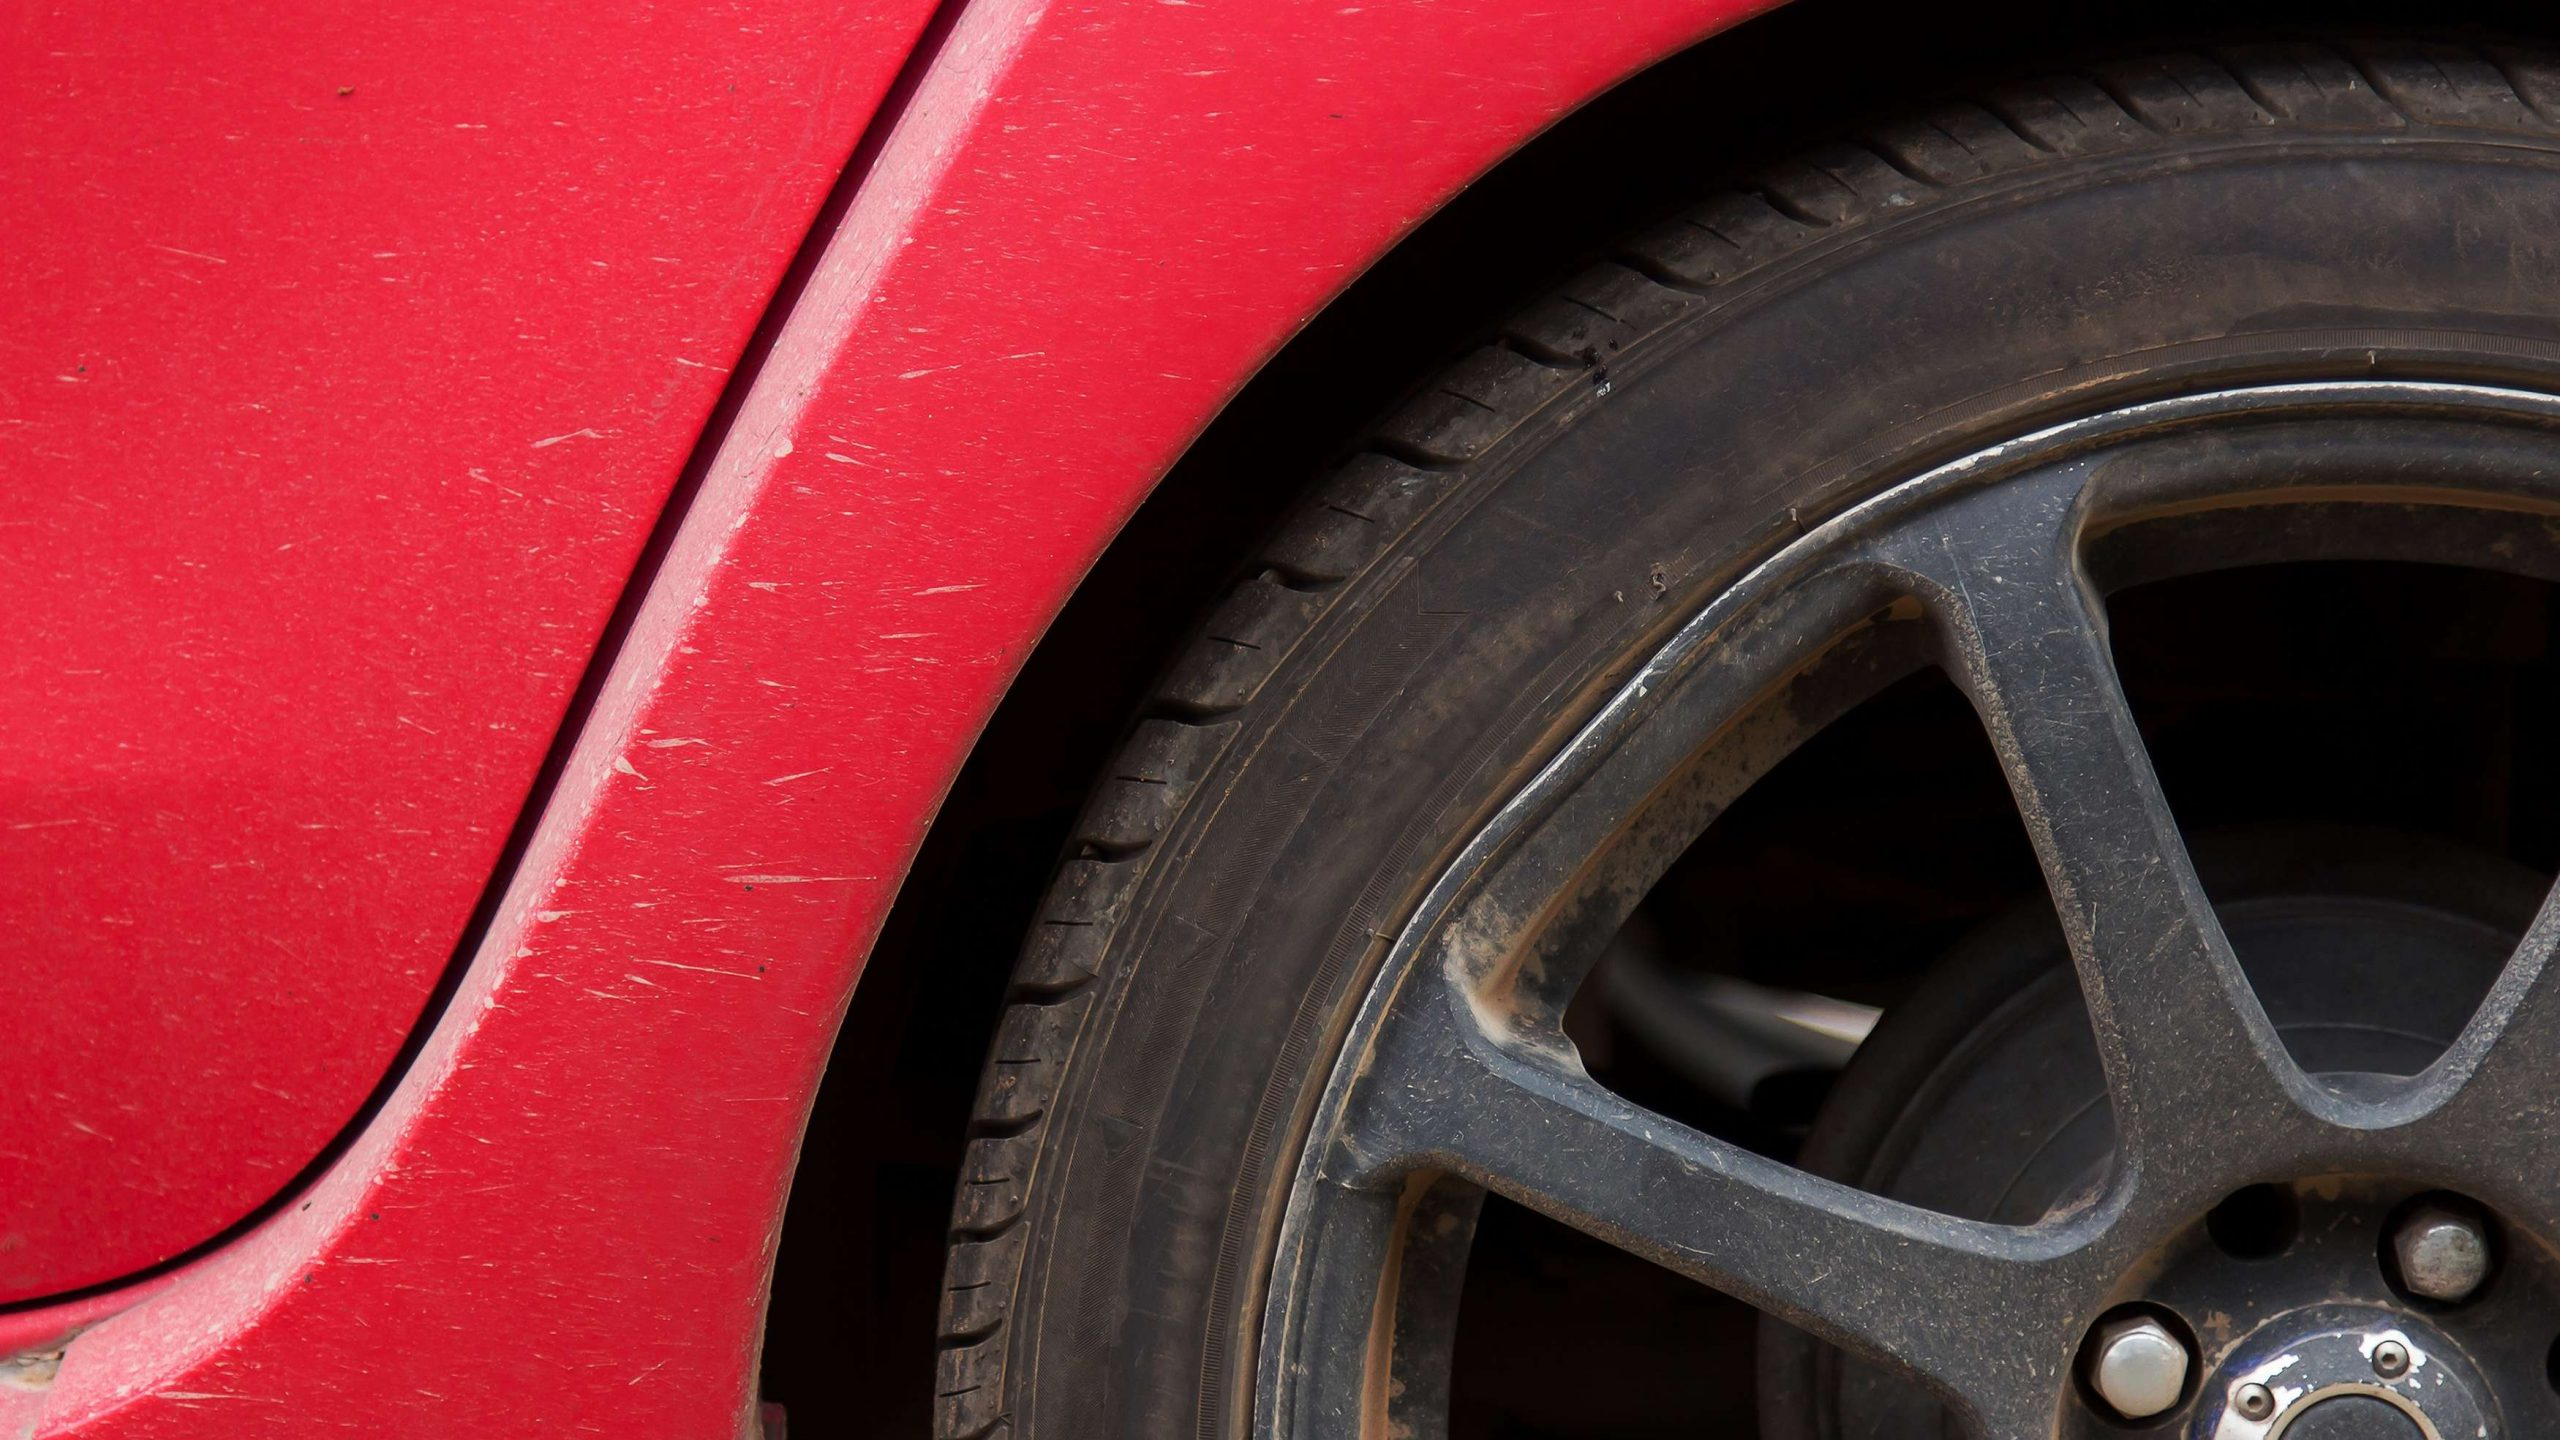 How to repair or replace the rusty tire rim on your vehicle